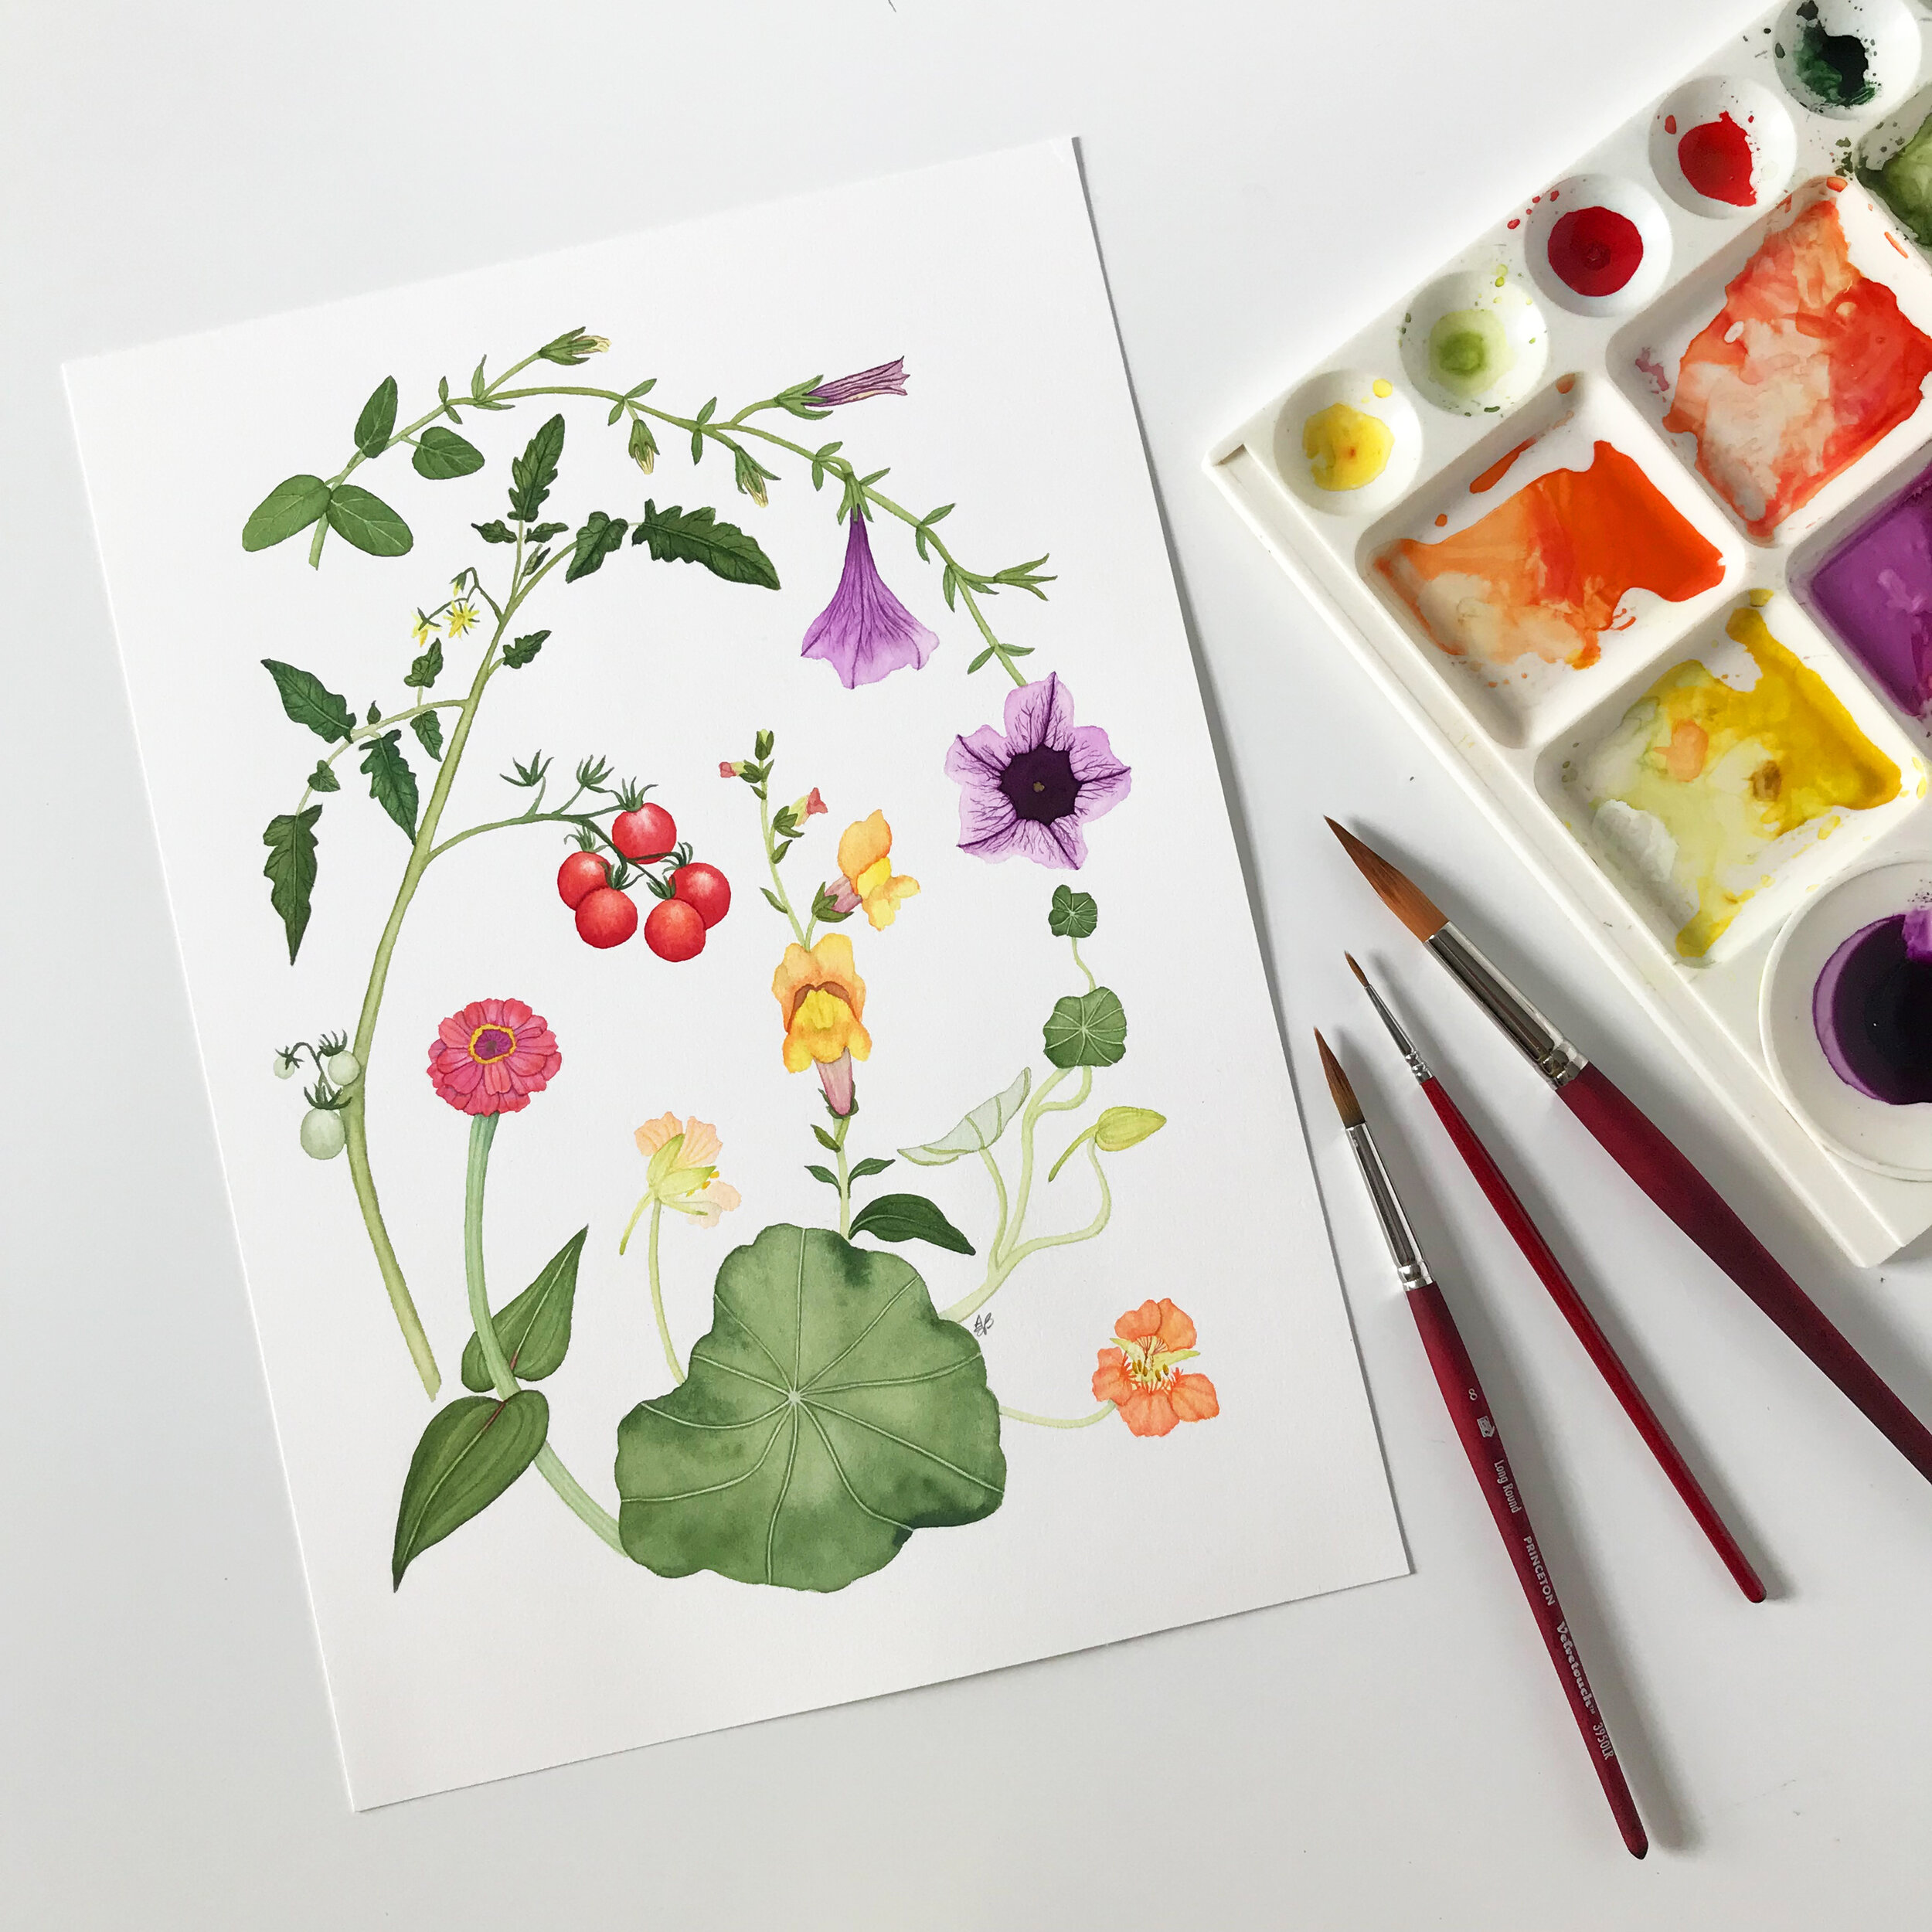 Summer Harvest Watercolor Painting by Anne Butera